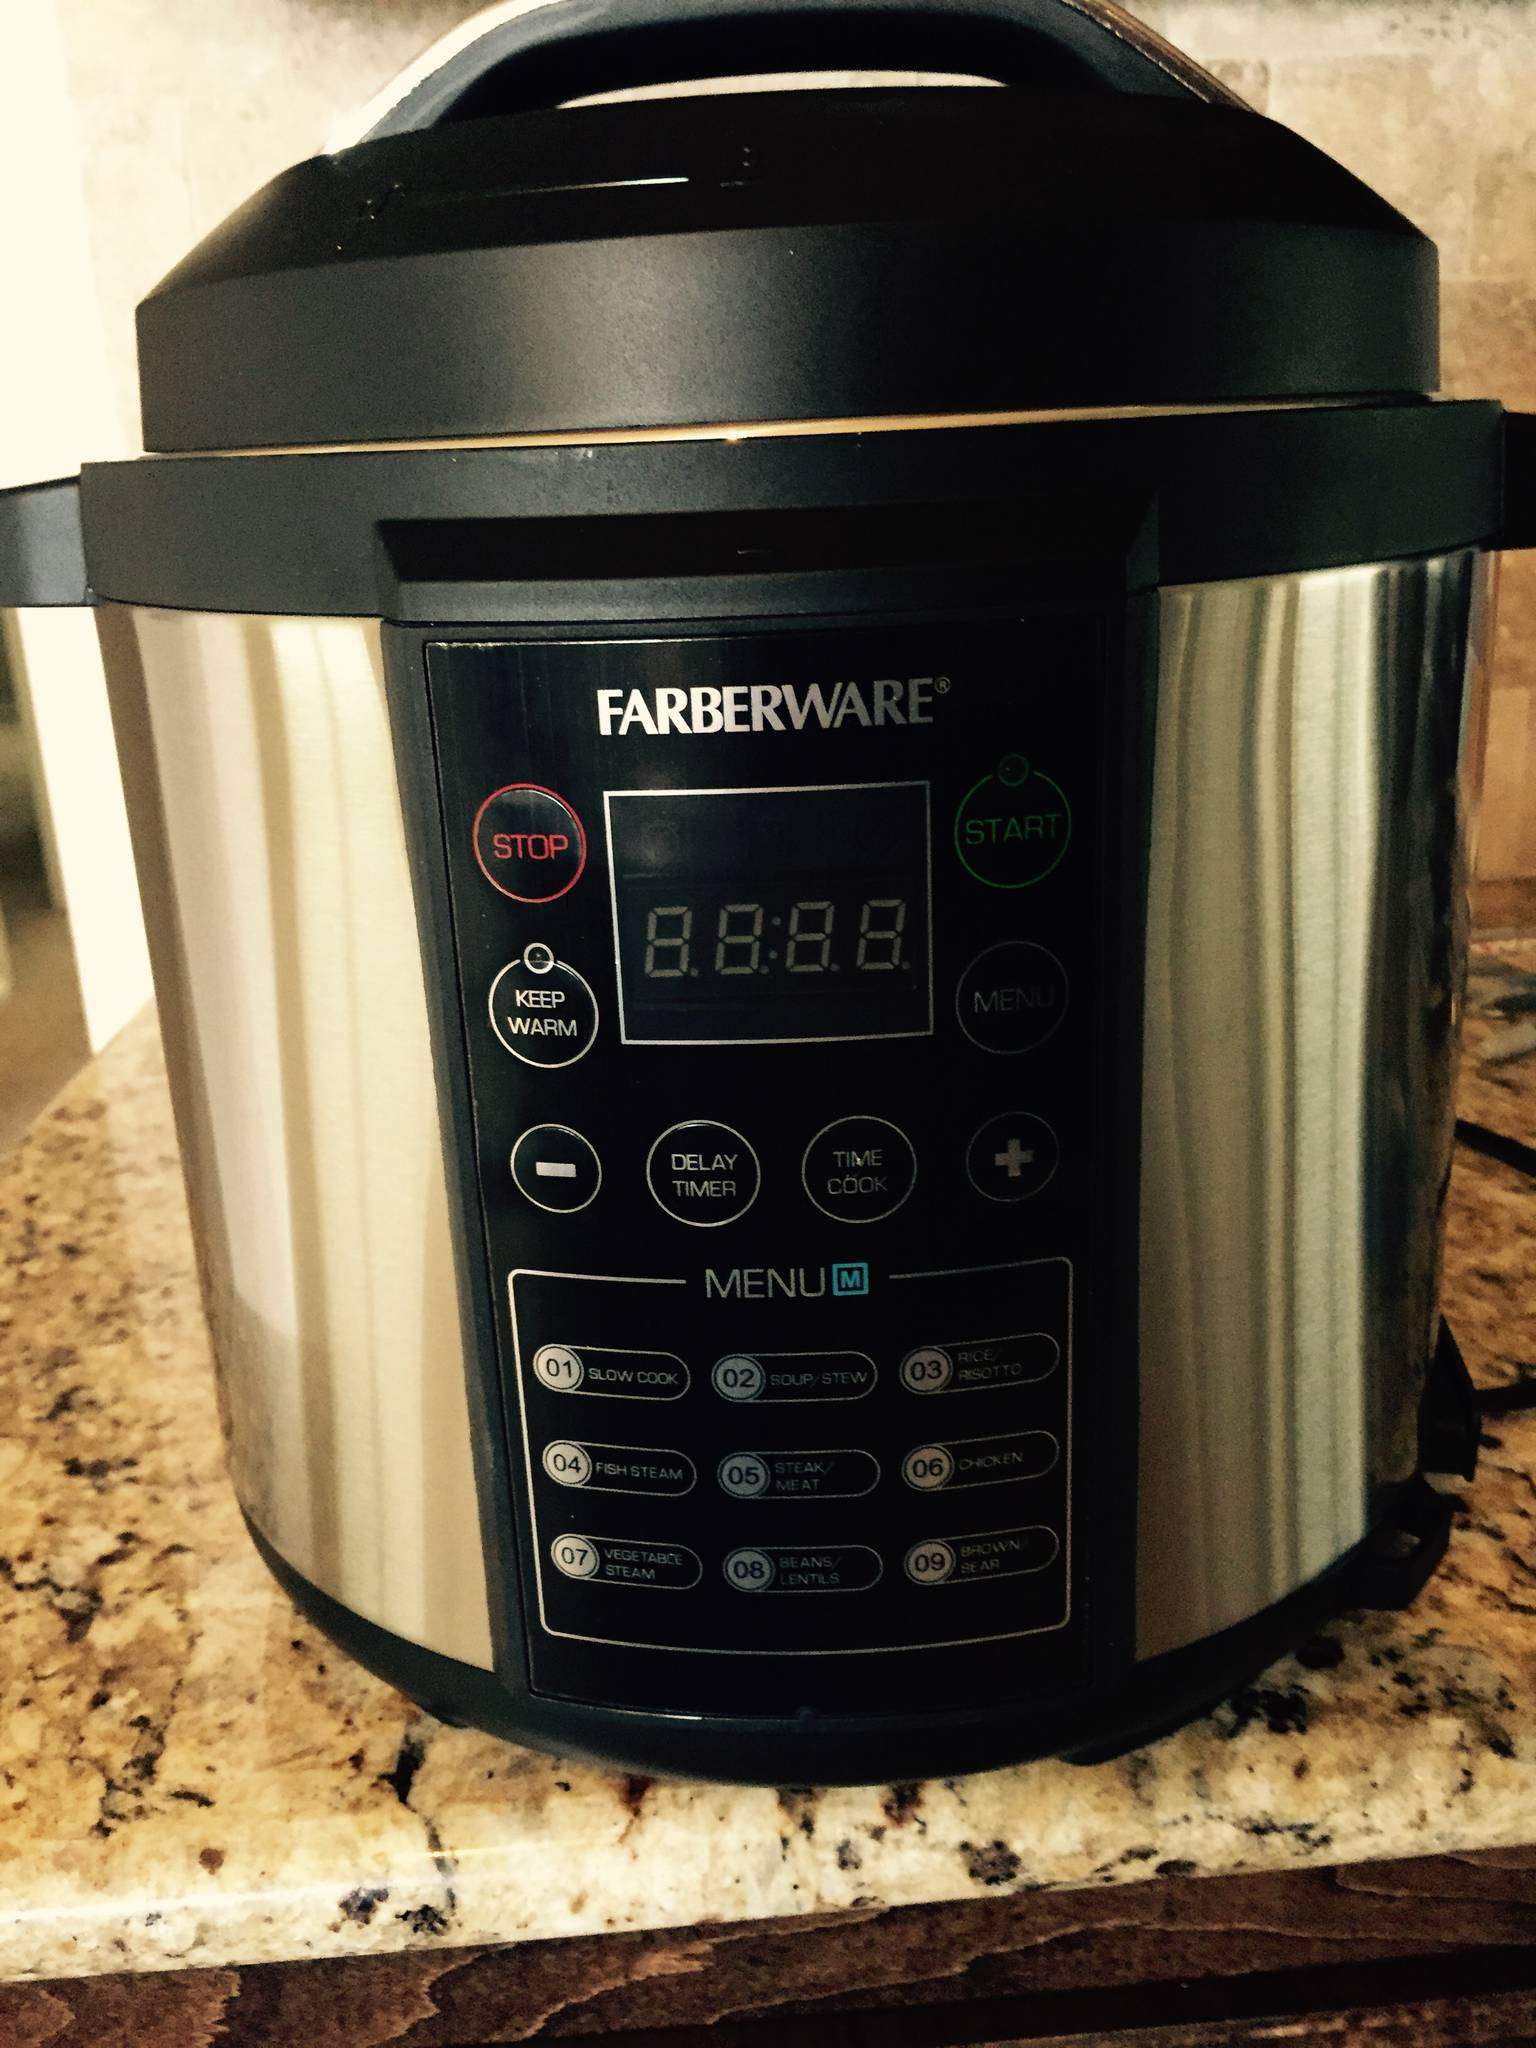 farberware pressure cooker manual wm cs6004w